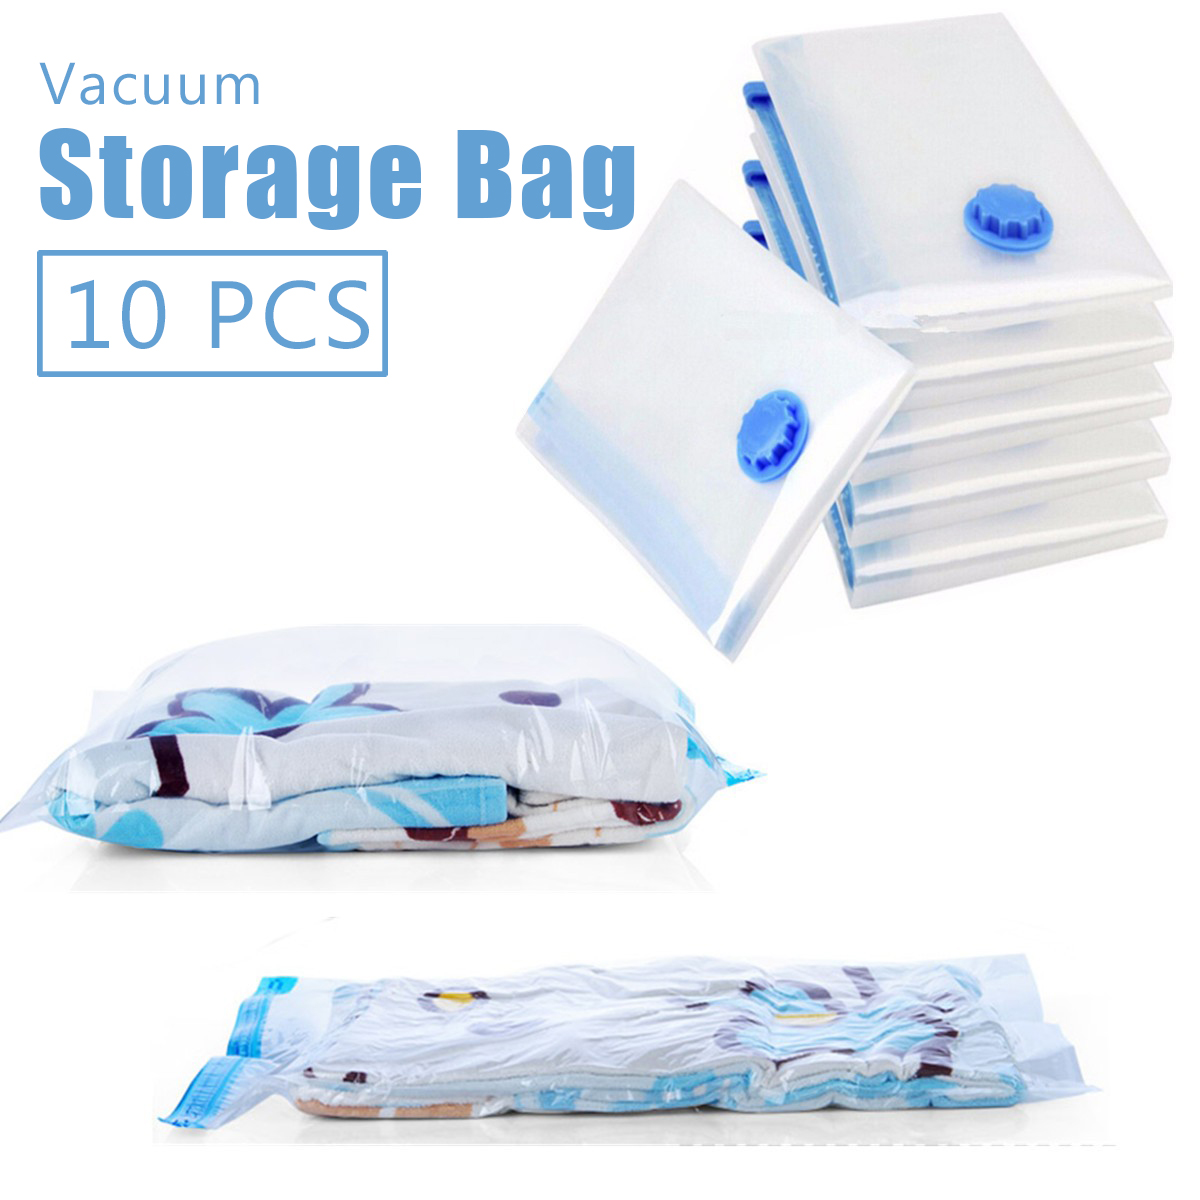 10Pcs Large Vacuum Storage Bags savingspace Space Saving Clothes Home Travel Compressed Bag Clear Blankets Comforters Bedding